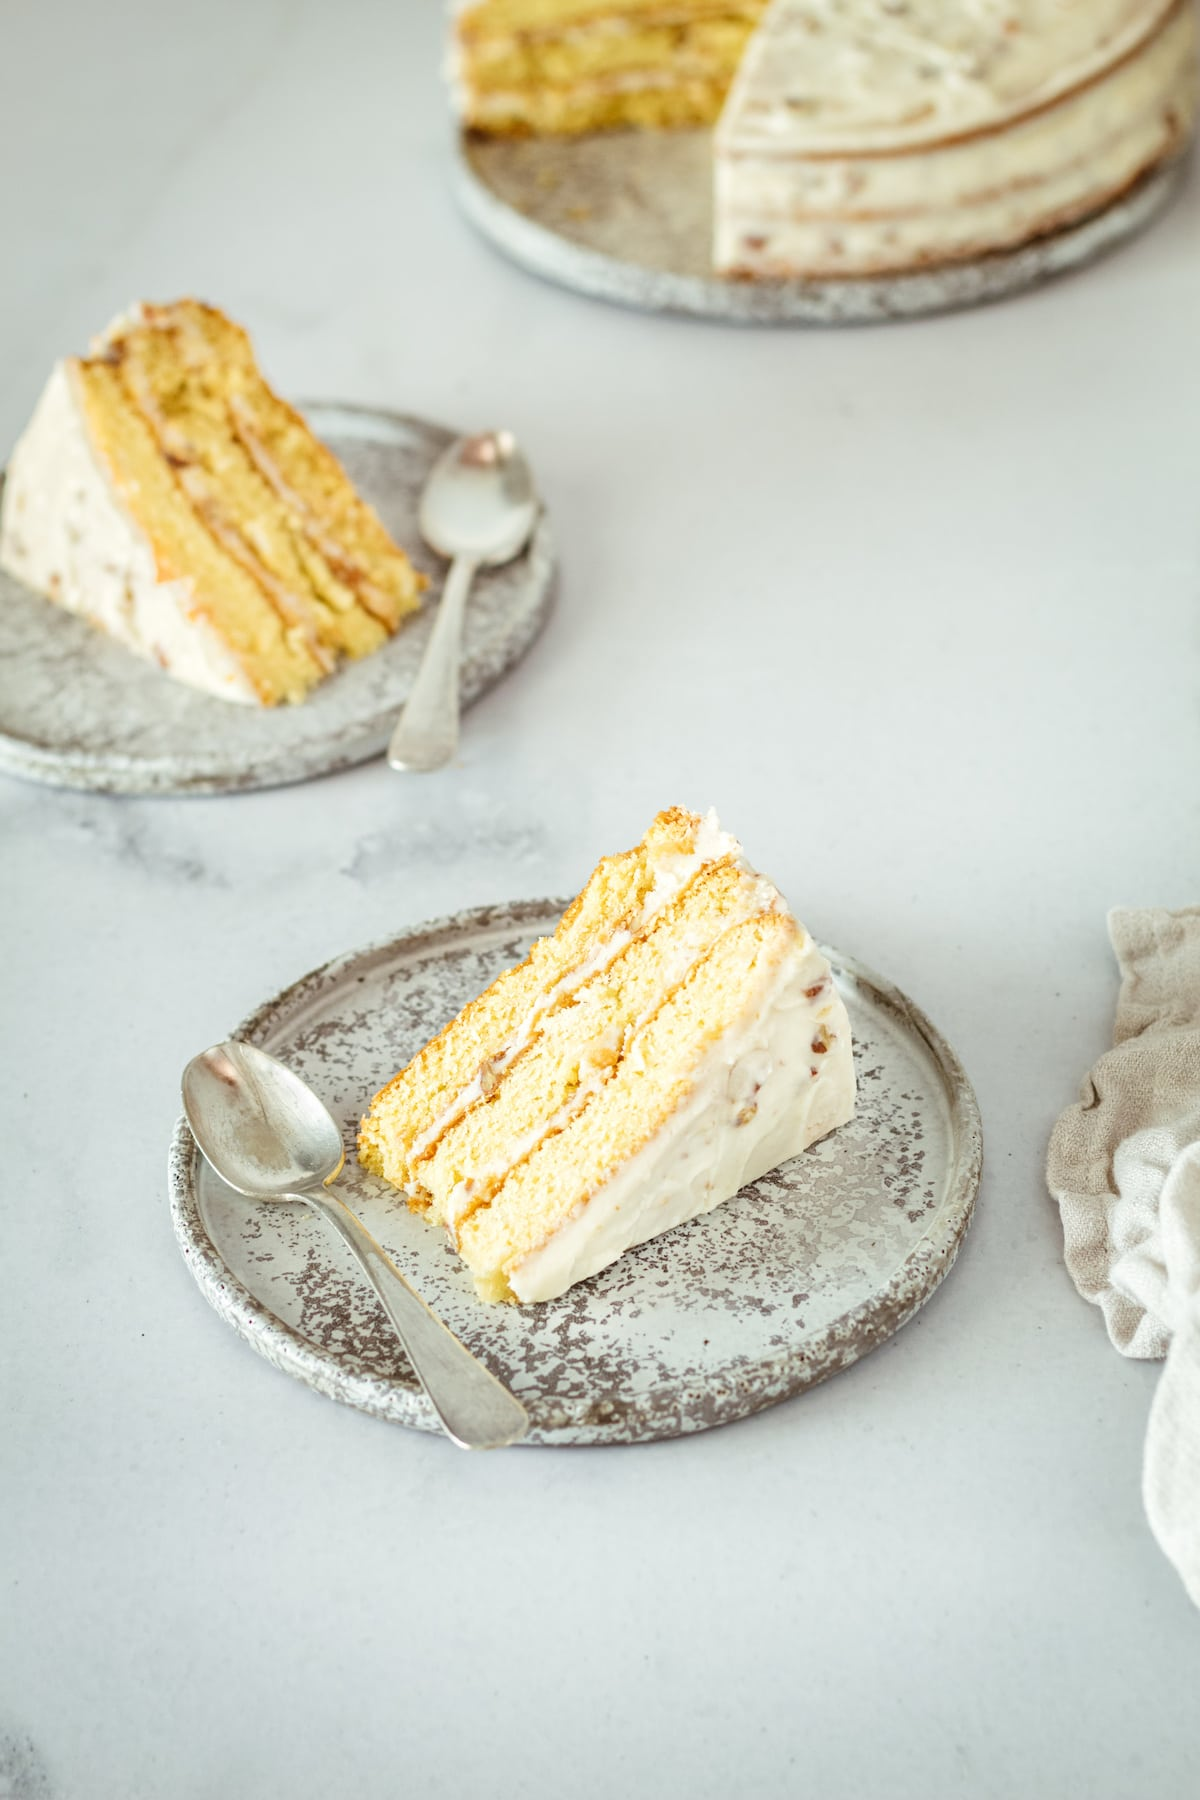 Two slices of Italian Cream Cake on plates with spoons